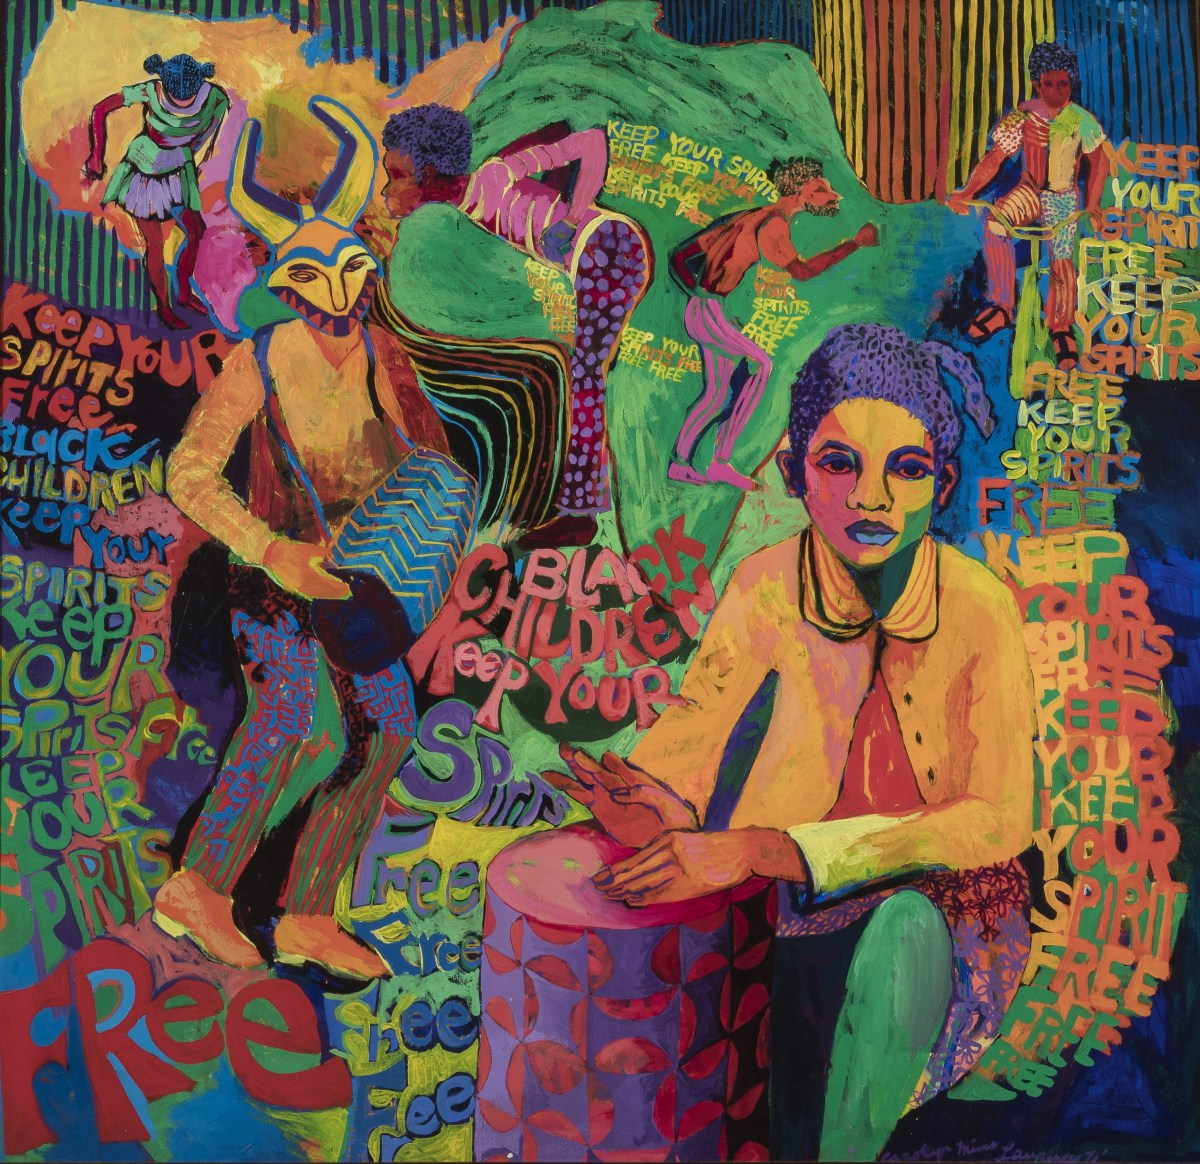 Carolyn Lawrence, Black Children Keep Your Spirits Free, 1972; Credit: Courtesy of the Broad